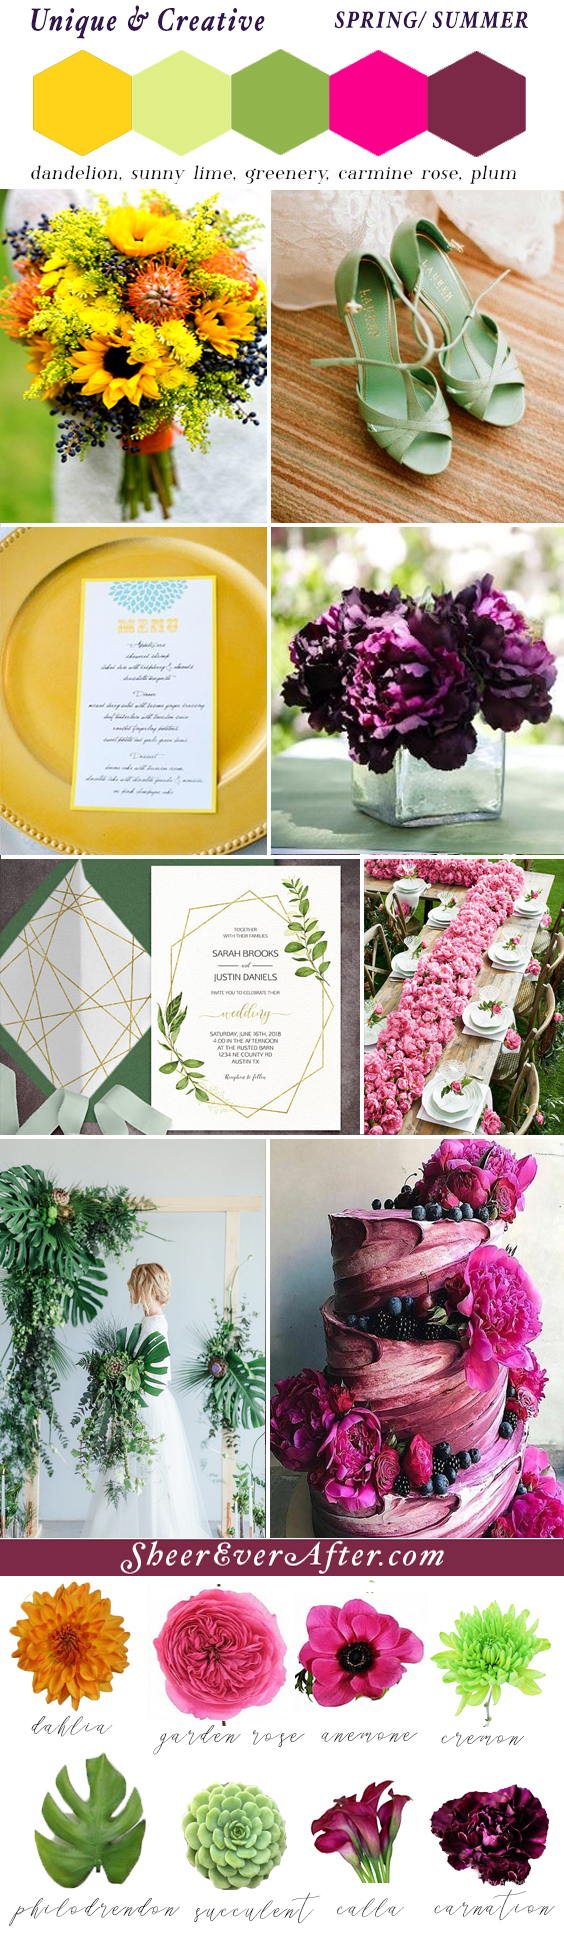 Unique & Creative Wedding Color Palette | This and more at www.SheerEverAfter.com